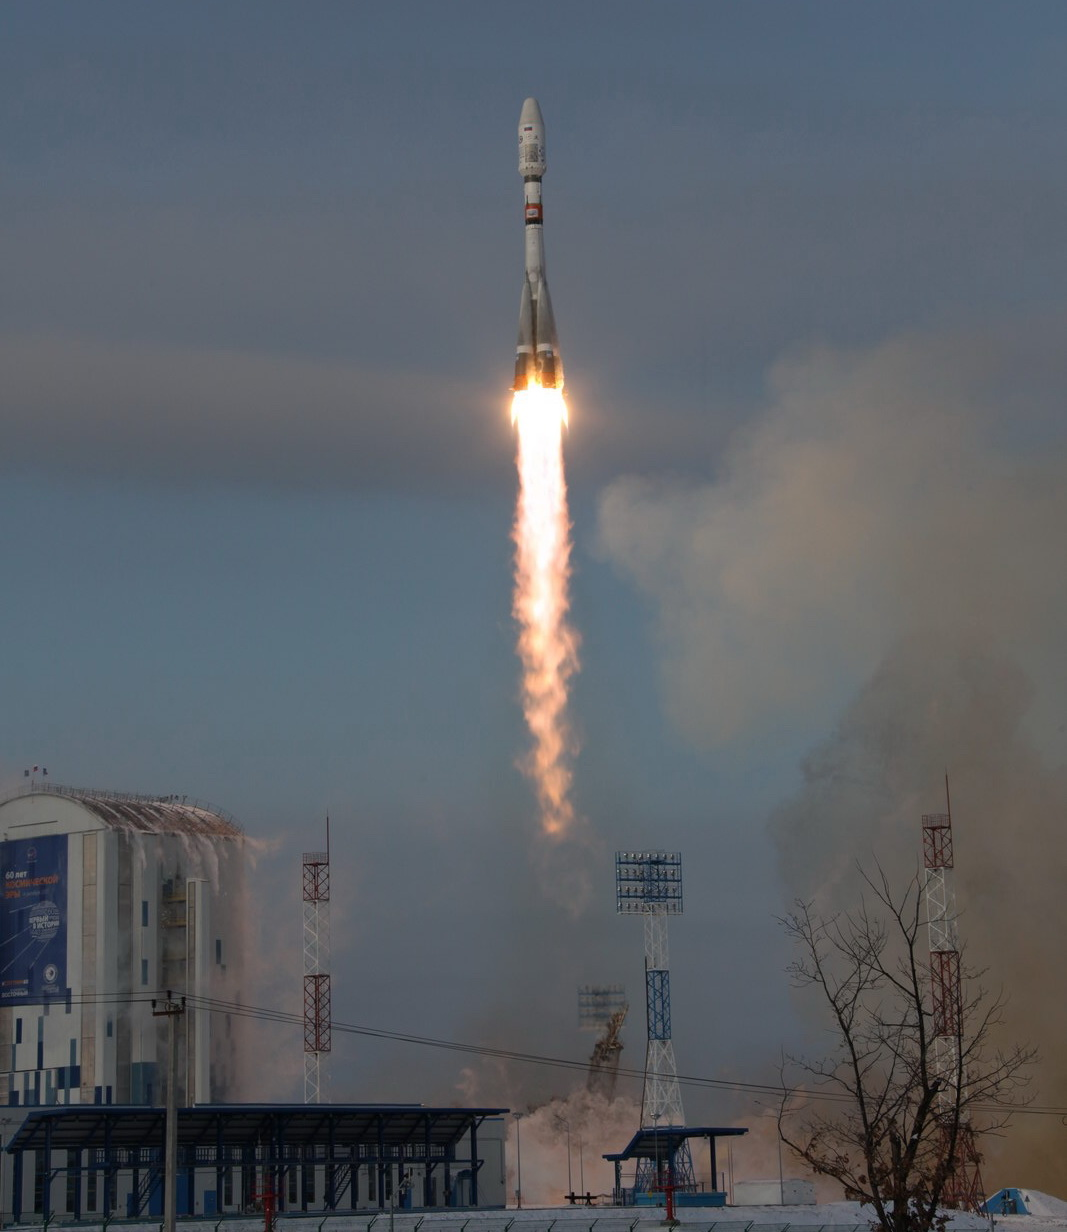 Russian space agency denies programming error bungled rocket launch